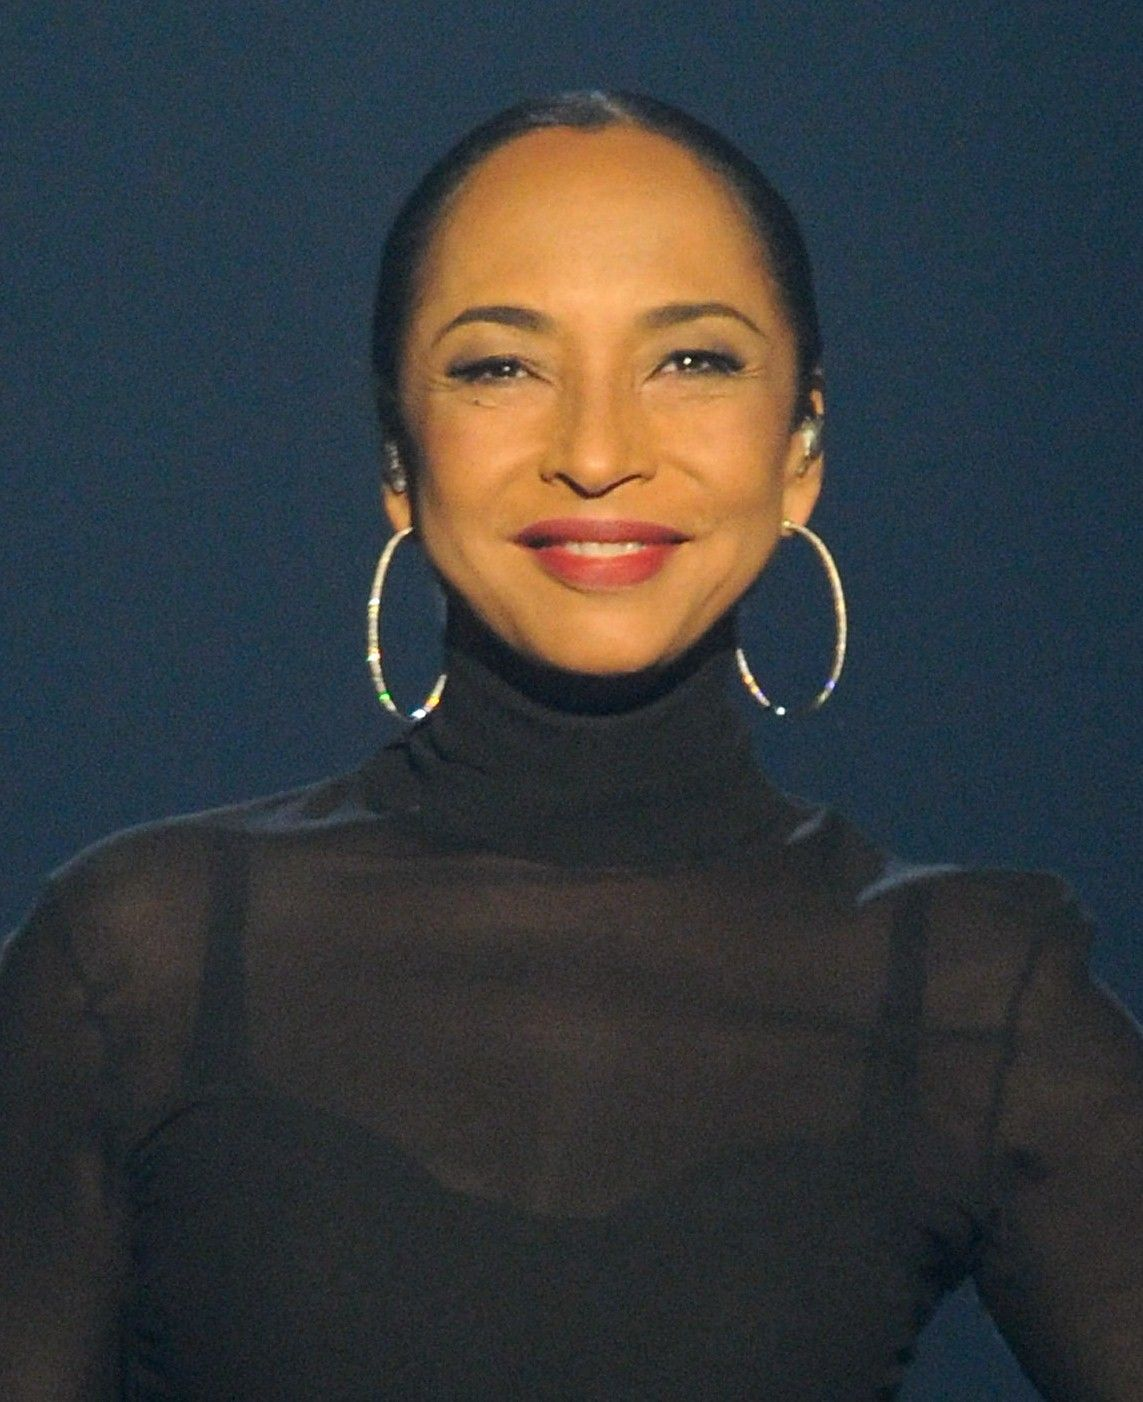 Pin by MINER on s t y l e   Sade, Sade adu, Style